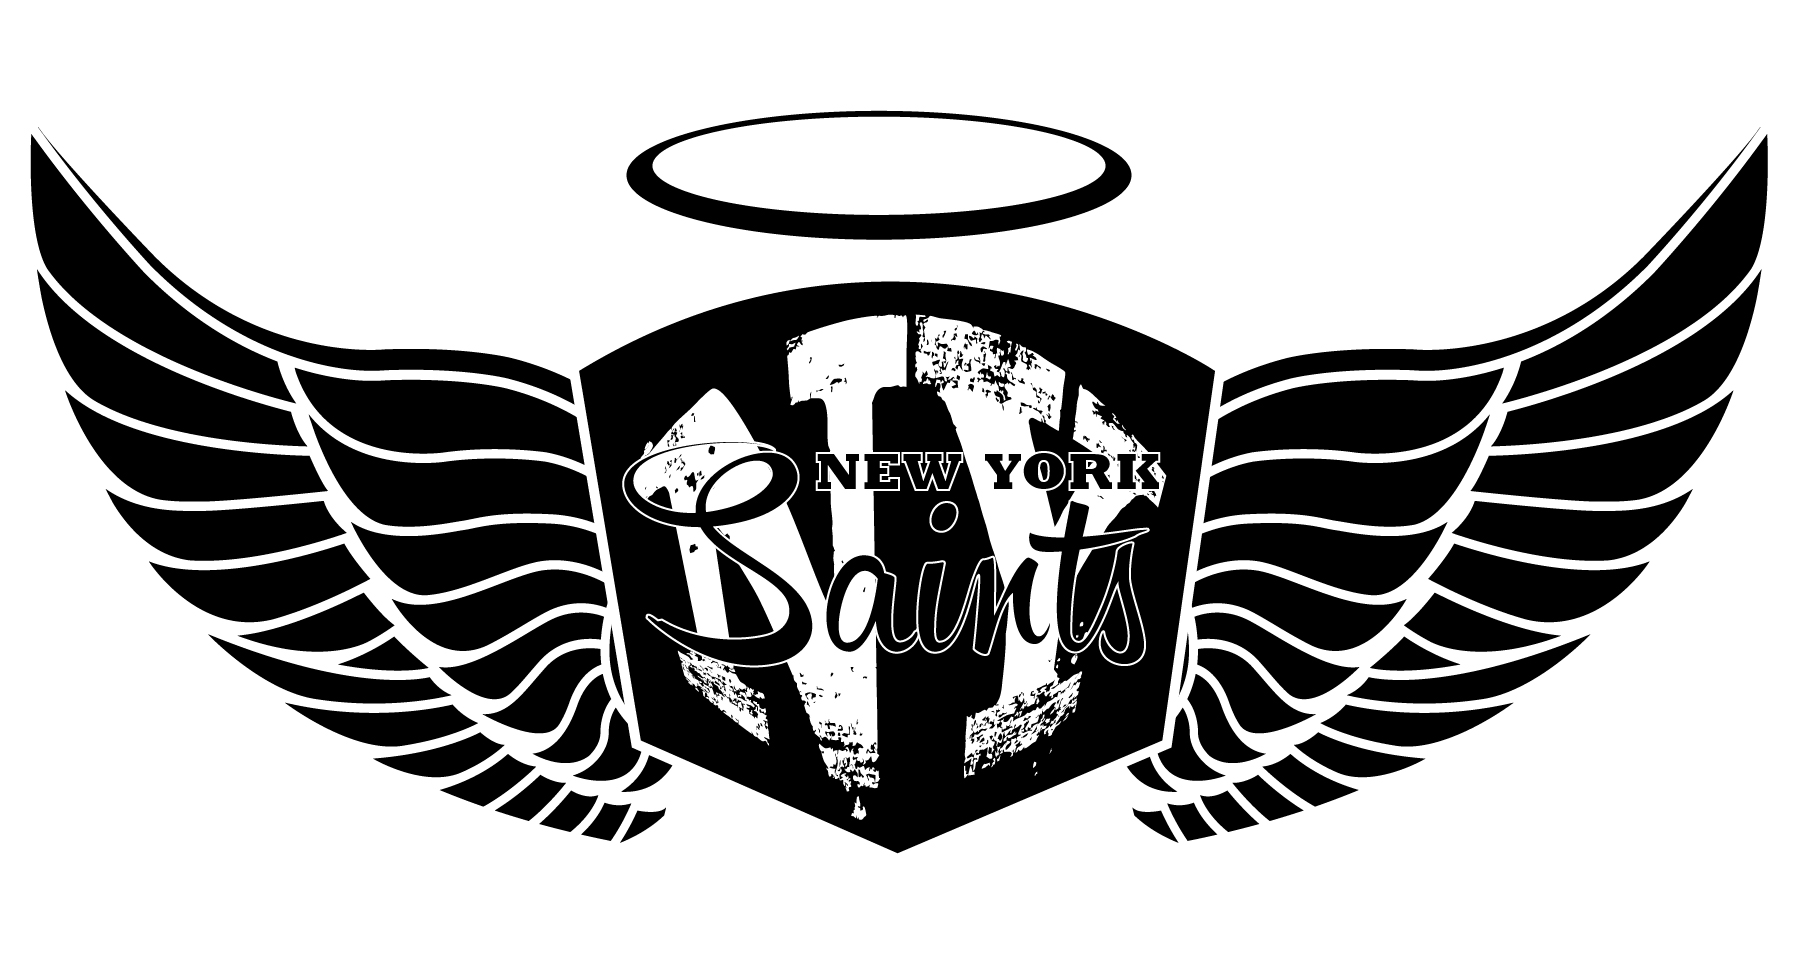 New York Saints logo